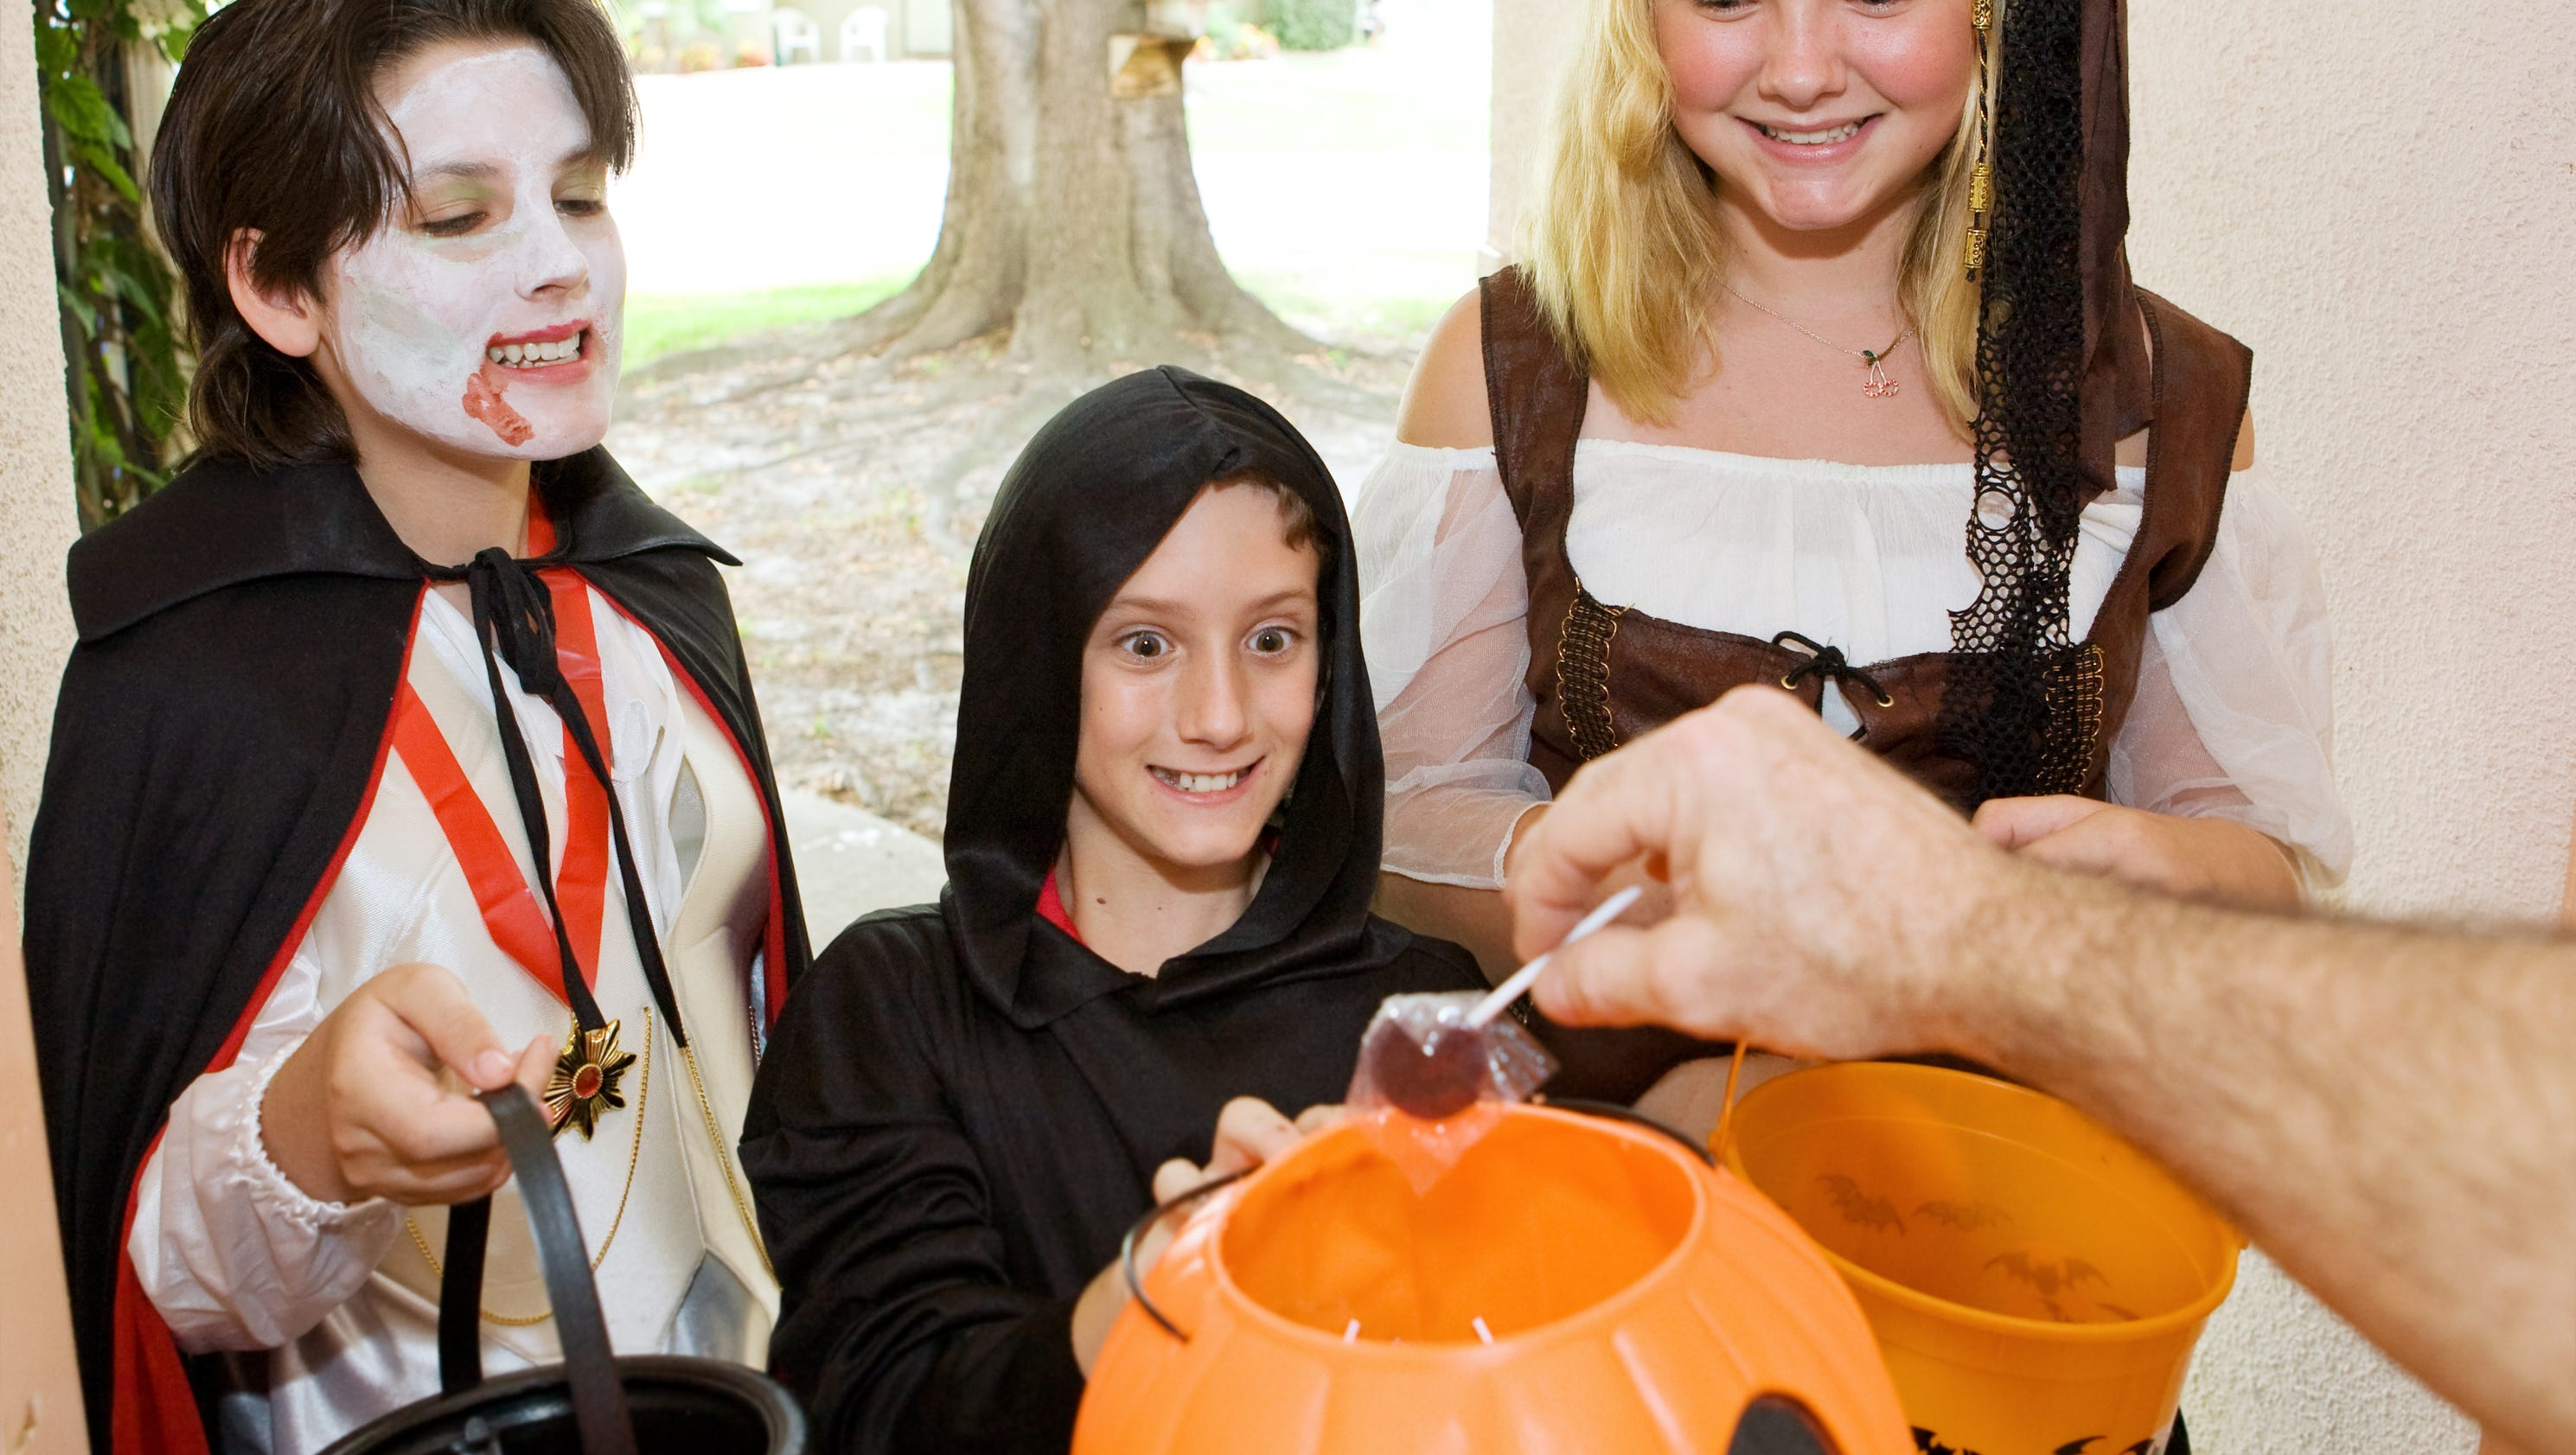 Should teens go trick-or-treating? Should you give them candy?